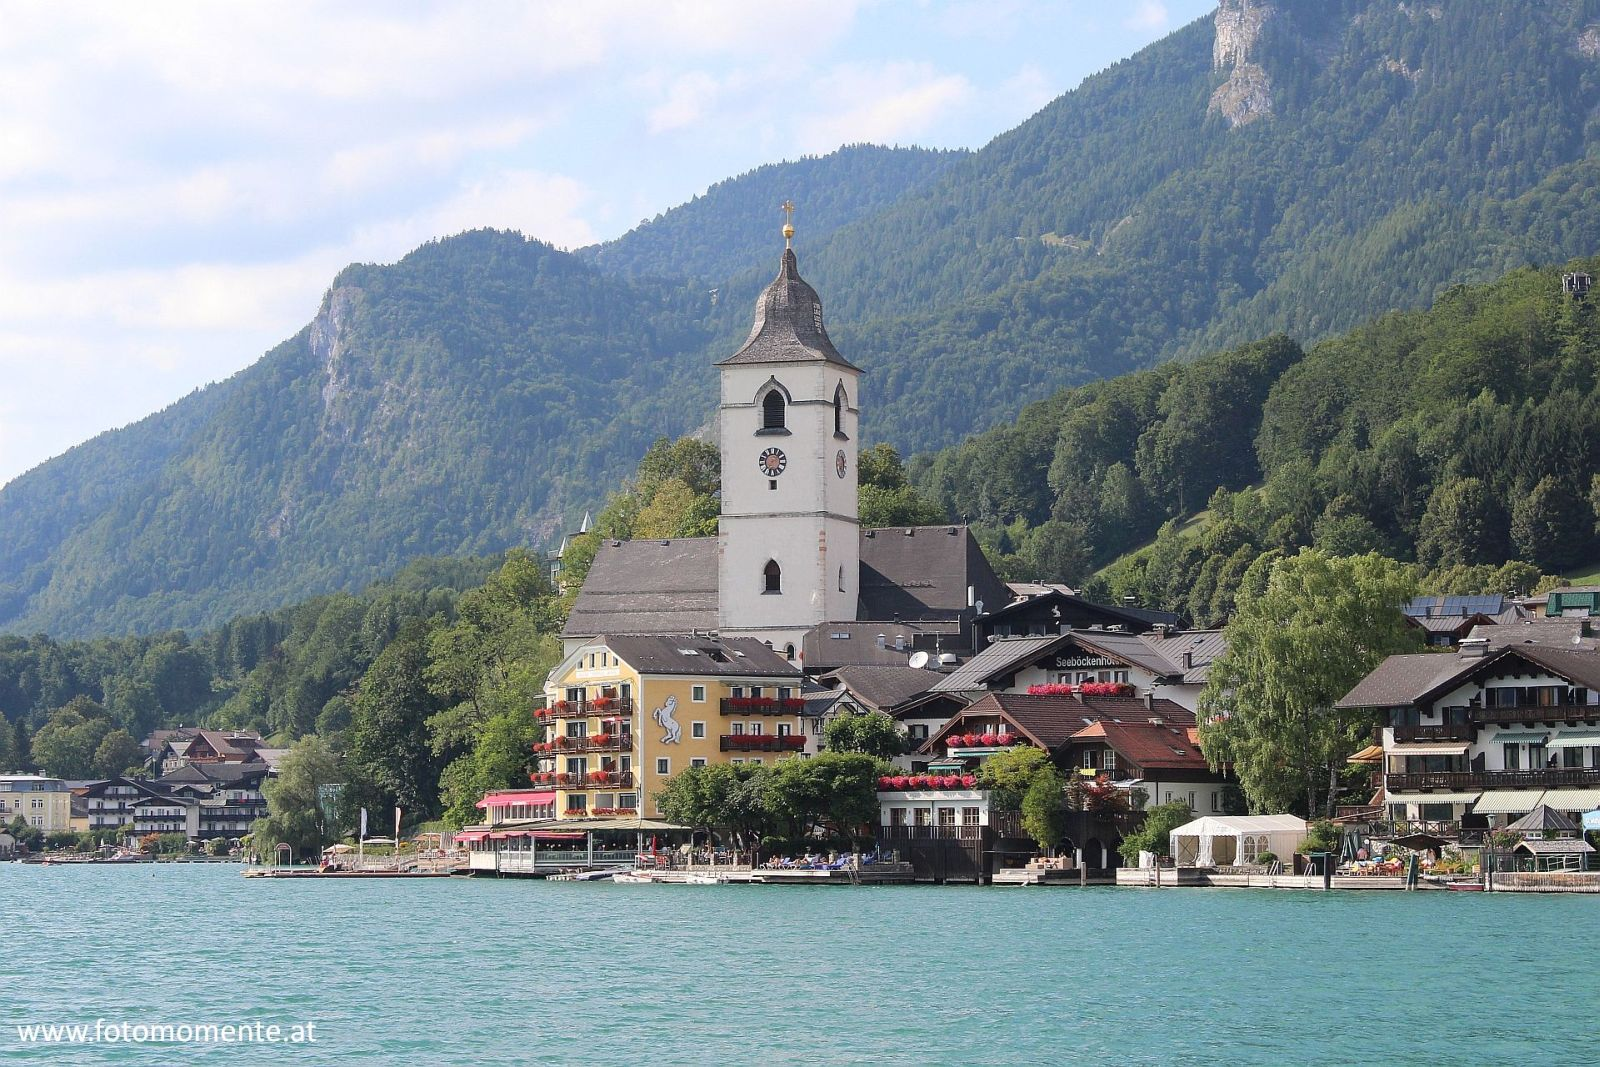 Kirche St. Wolfgang Wolfgangsee - Kirche in St. Wolfgang am Wolfgangsee